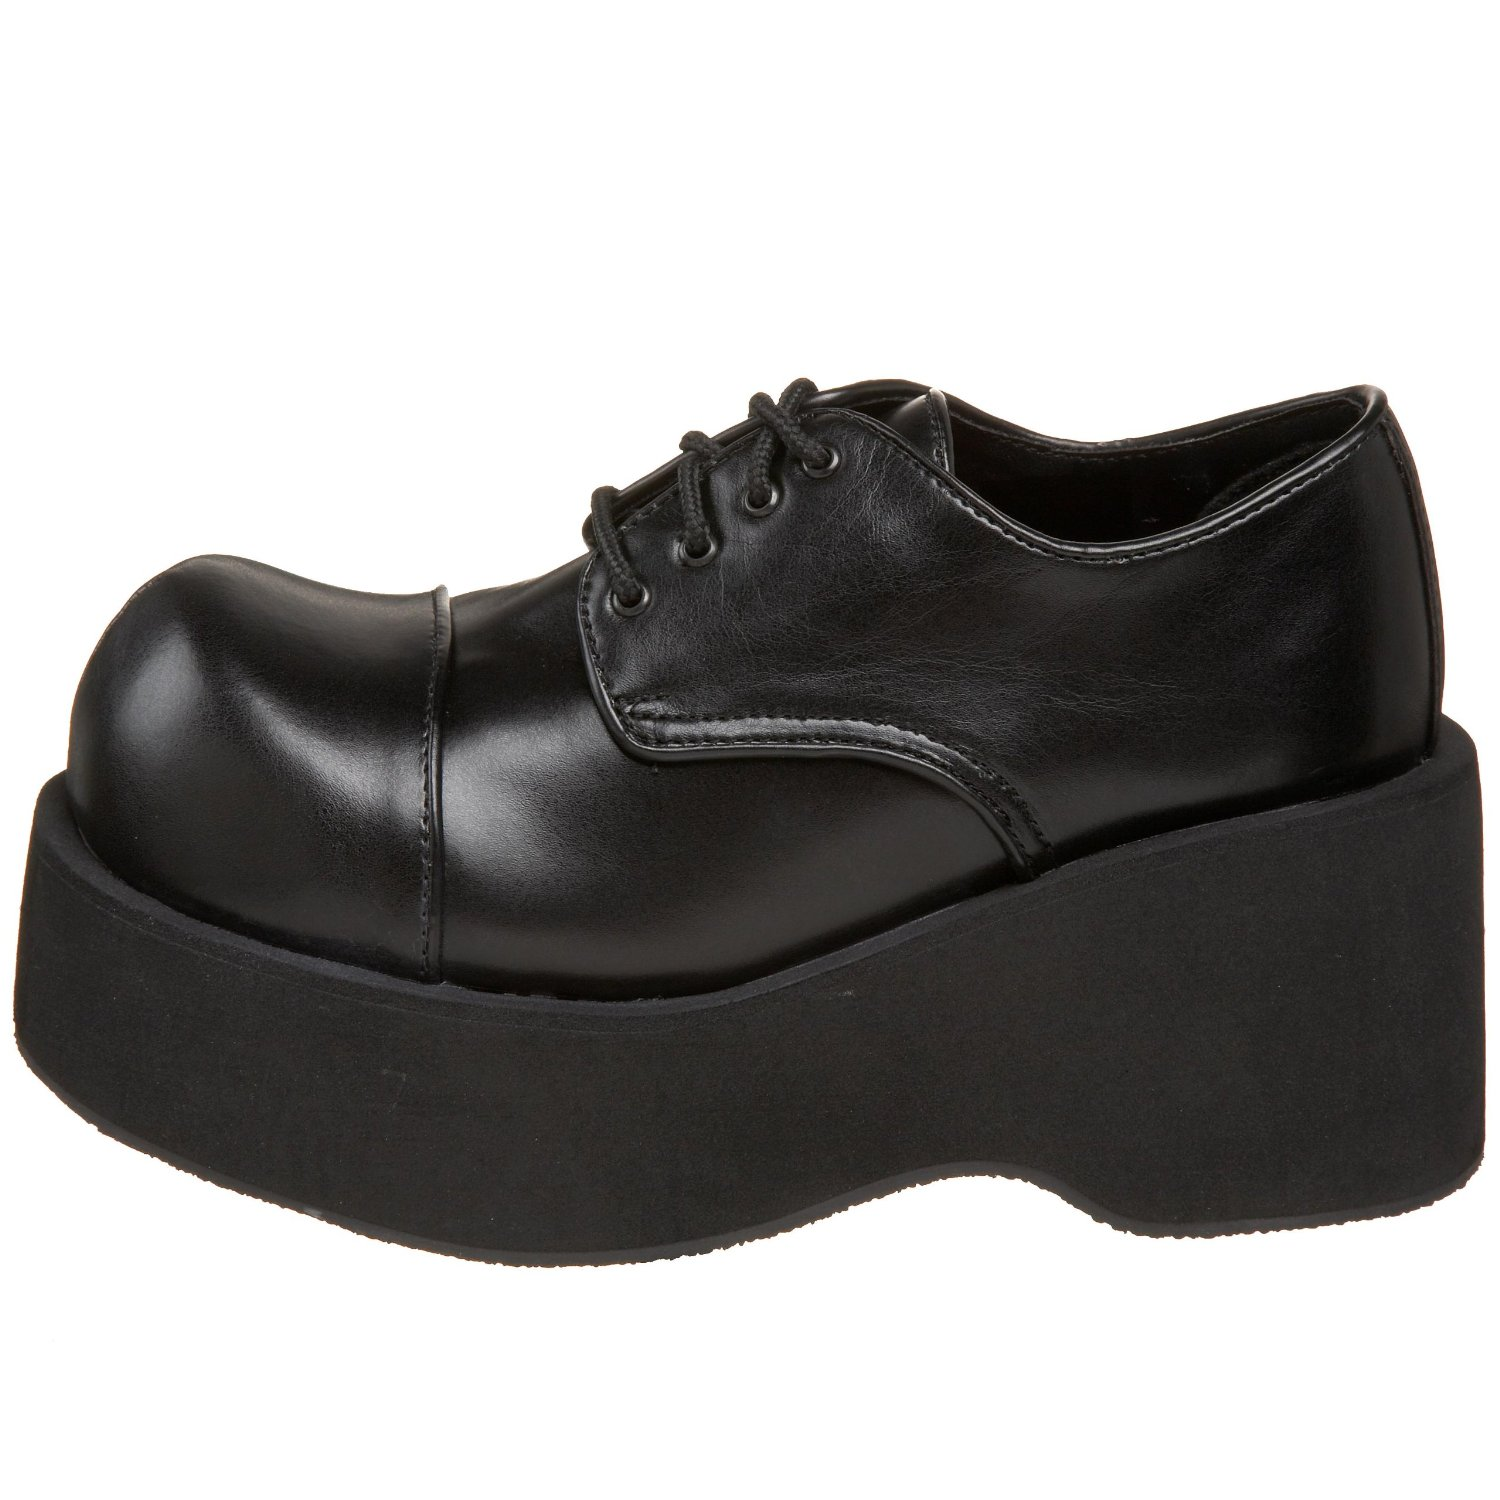 Big vegan lace up platform shoes